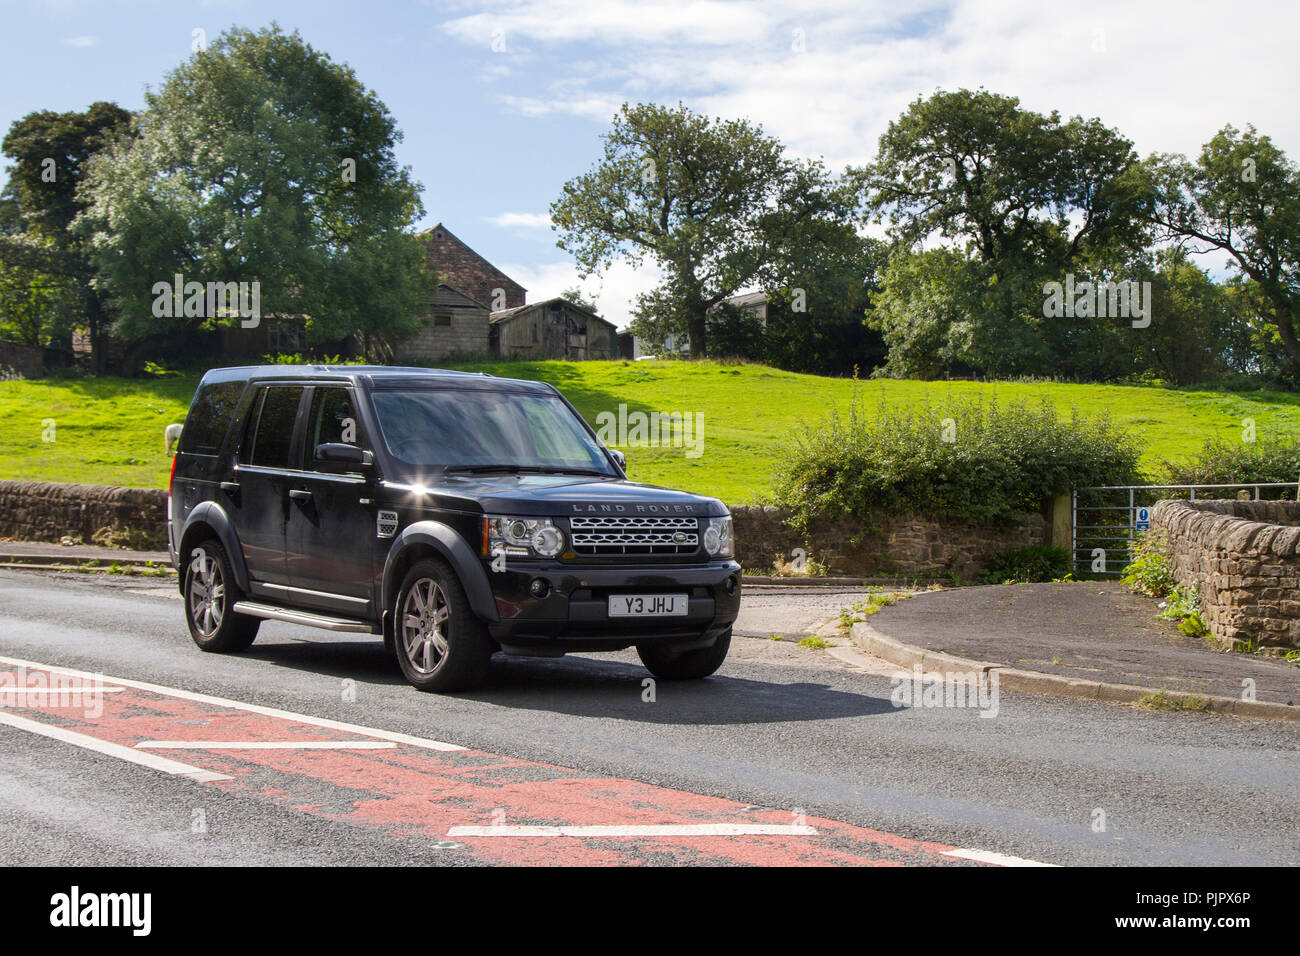 Black Land Rover Discovery Sdv6 Auto 245 Classic, vintage, veteran, cars of yesteryear, restored collectibles at Hoghton Tower Class Cars Rally, UK - Stock Image